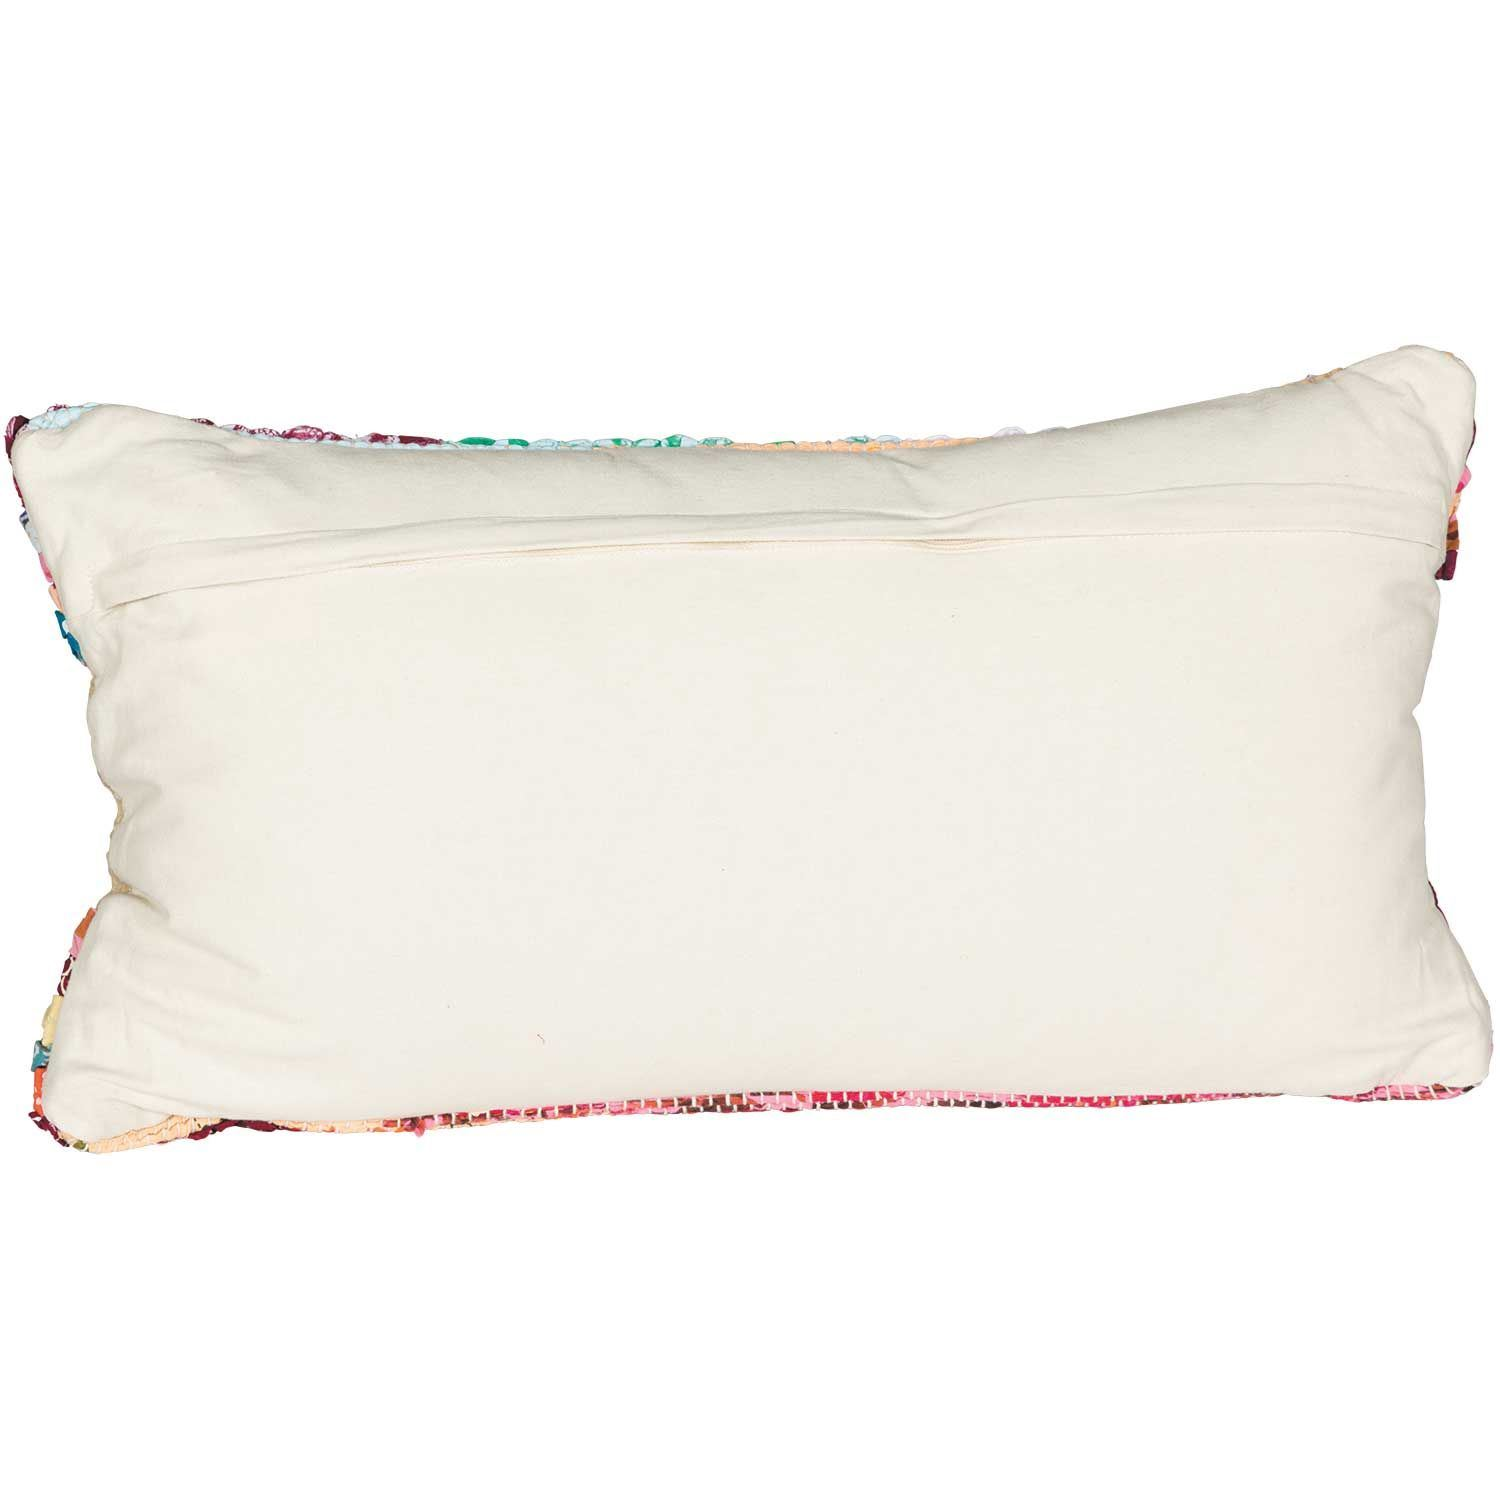 Picture of Deep Wisteria 14X26 Decorative Pillow